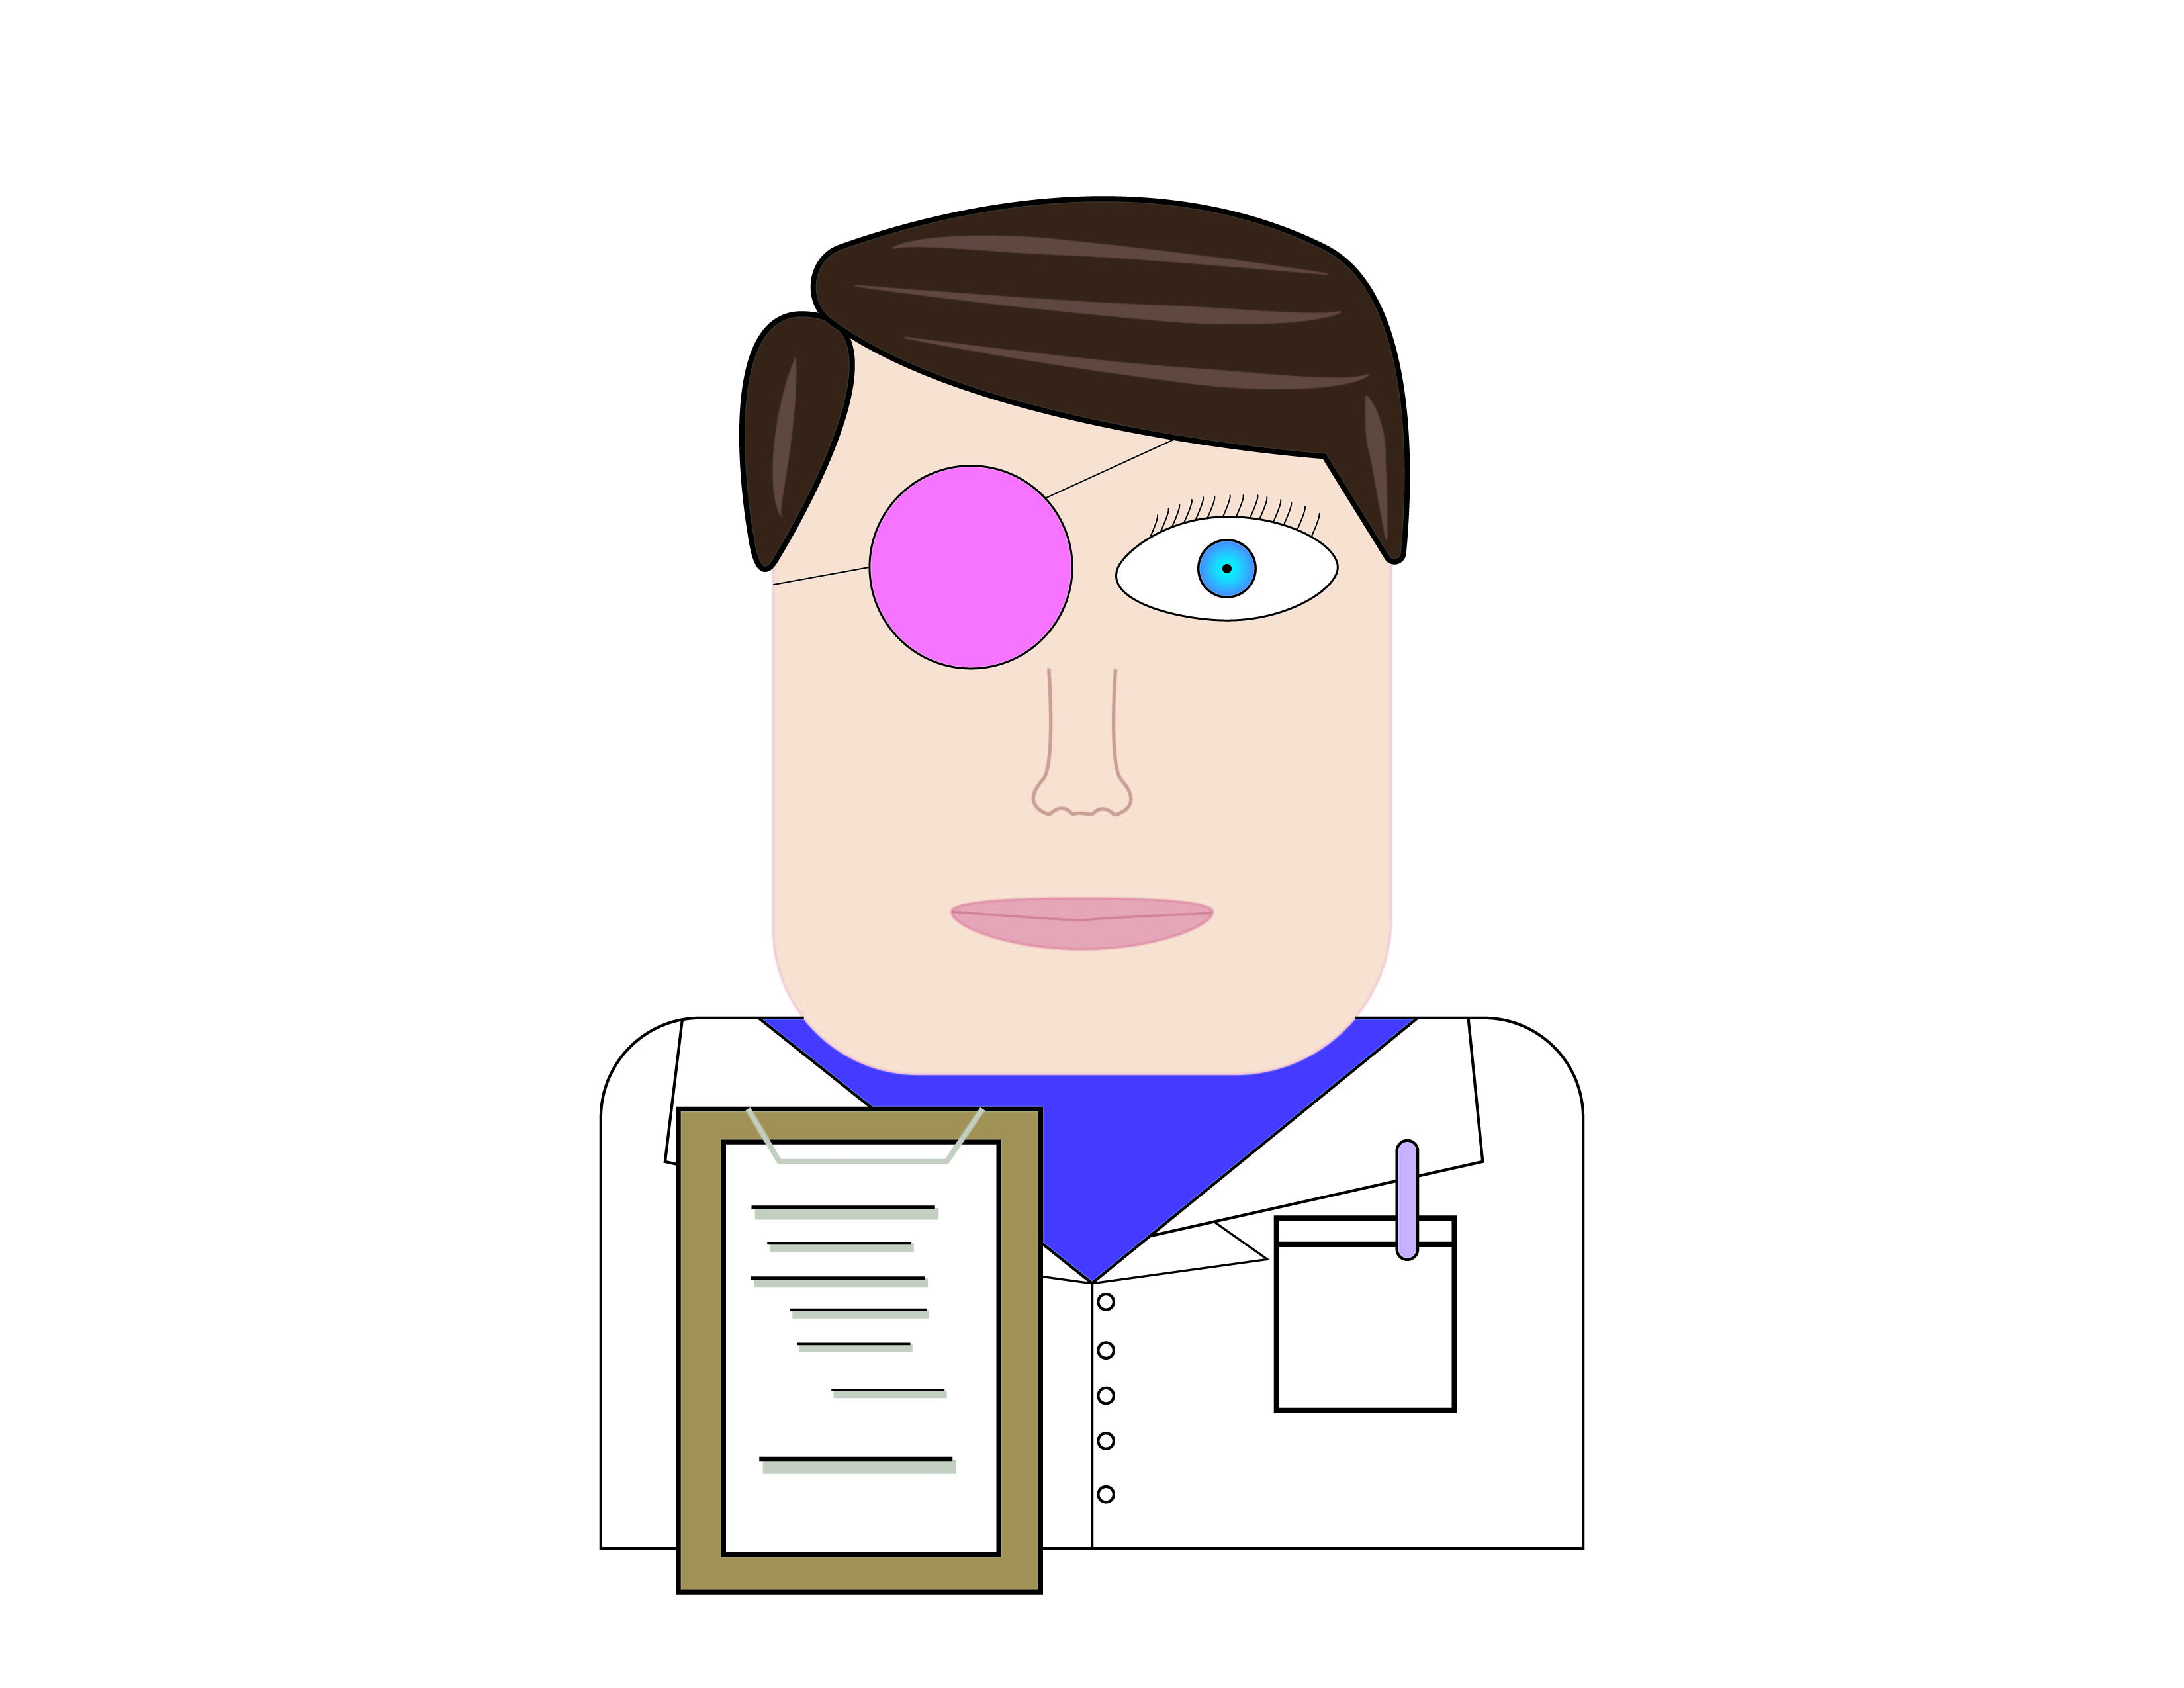 A male scientist holds a clipboard and wears a lab coat. One of his eyes is covered with a pink eyepatch.